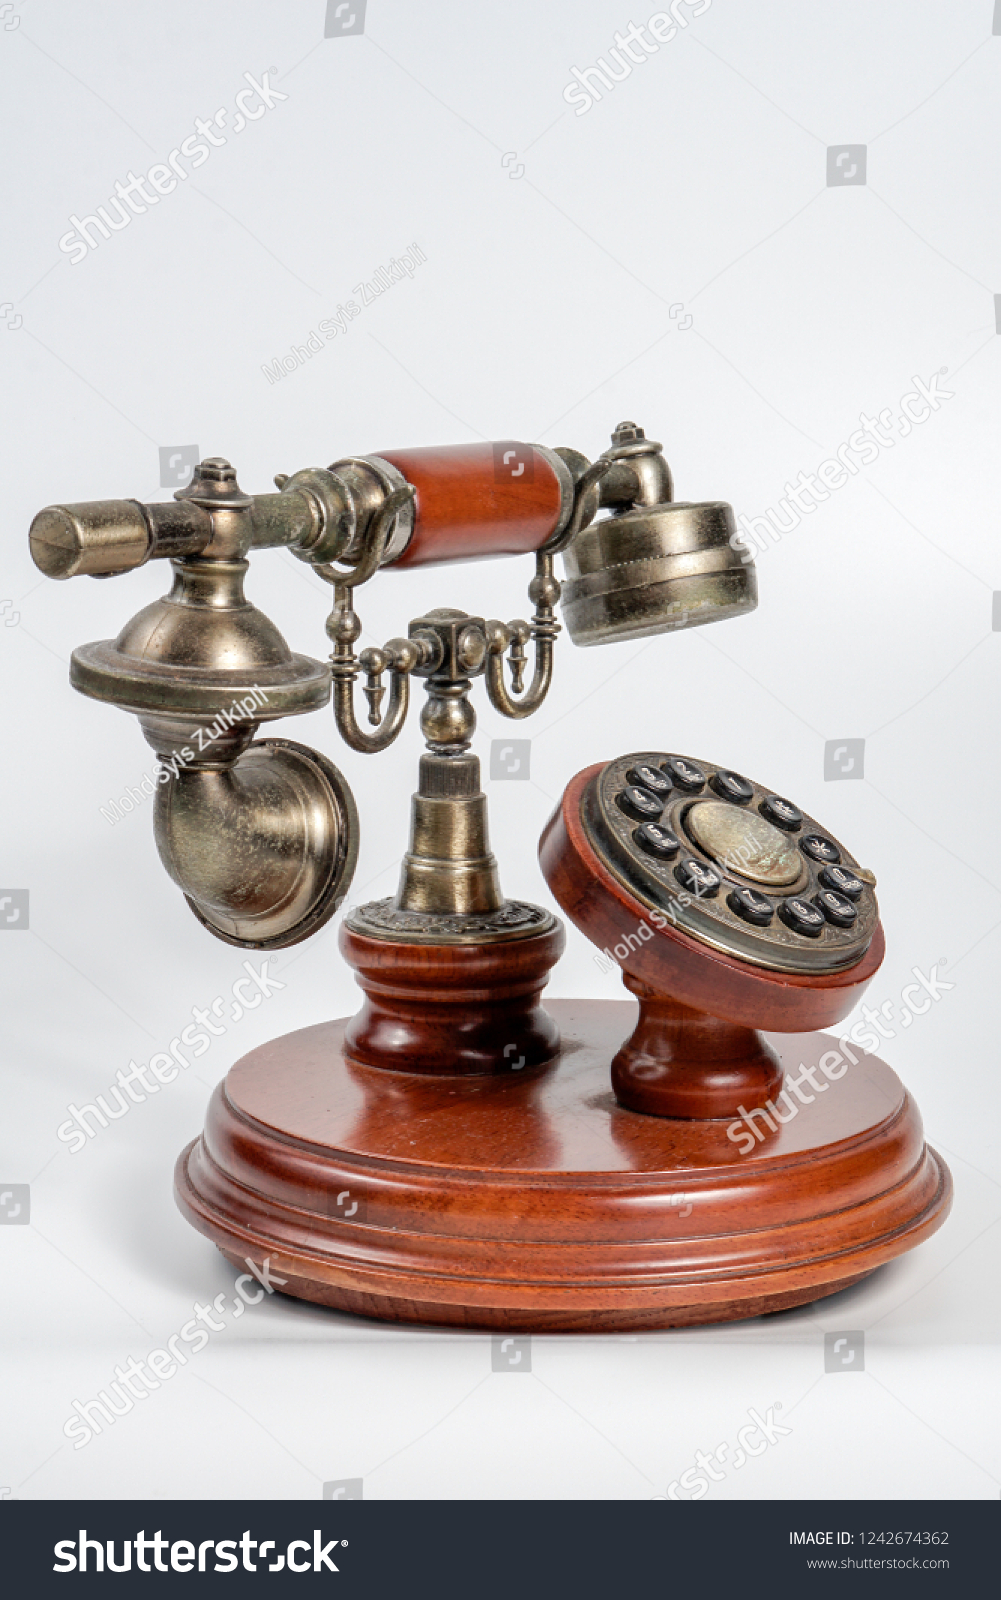 hight resolution of old antique vintage telephone phone isolated